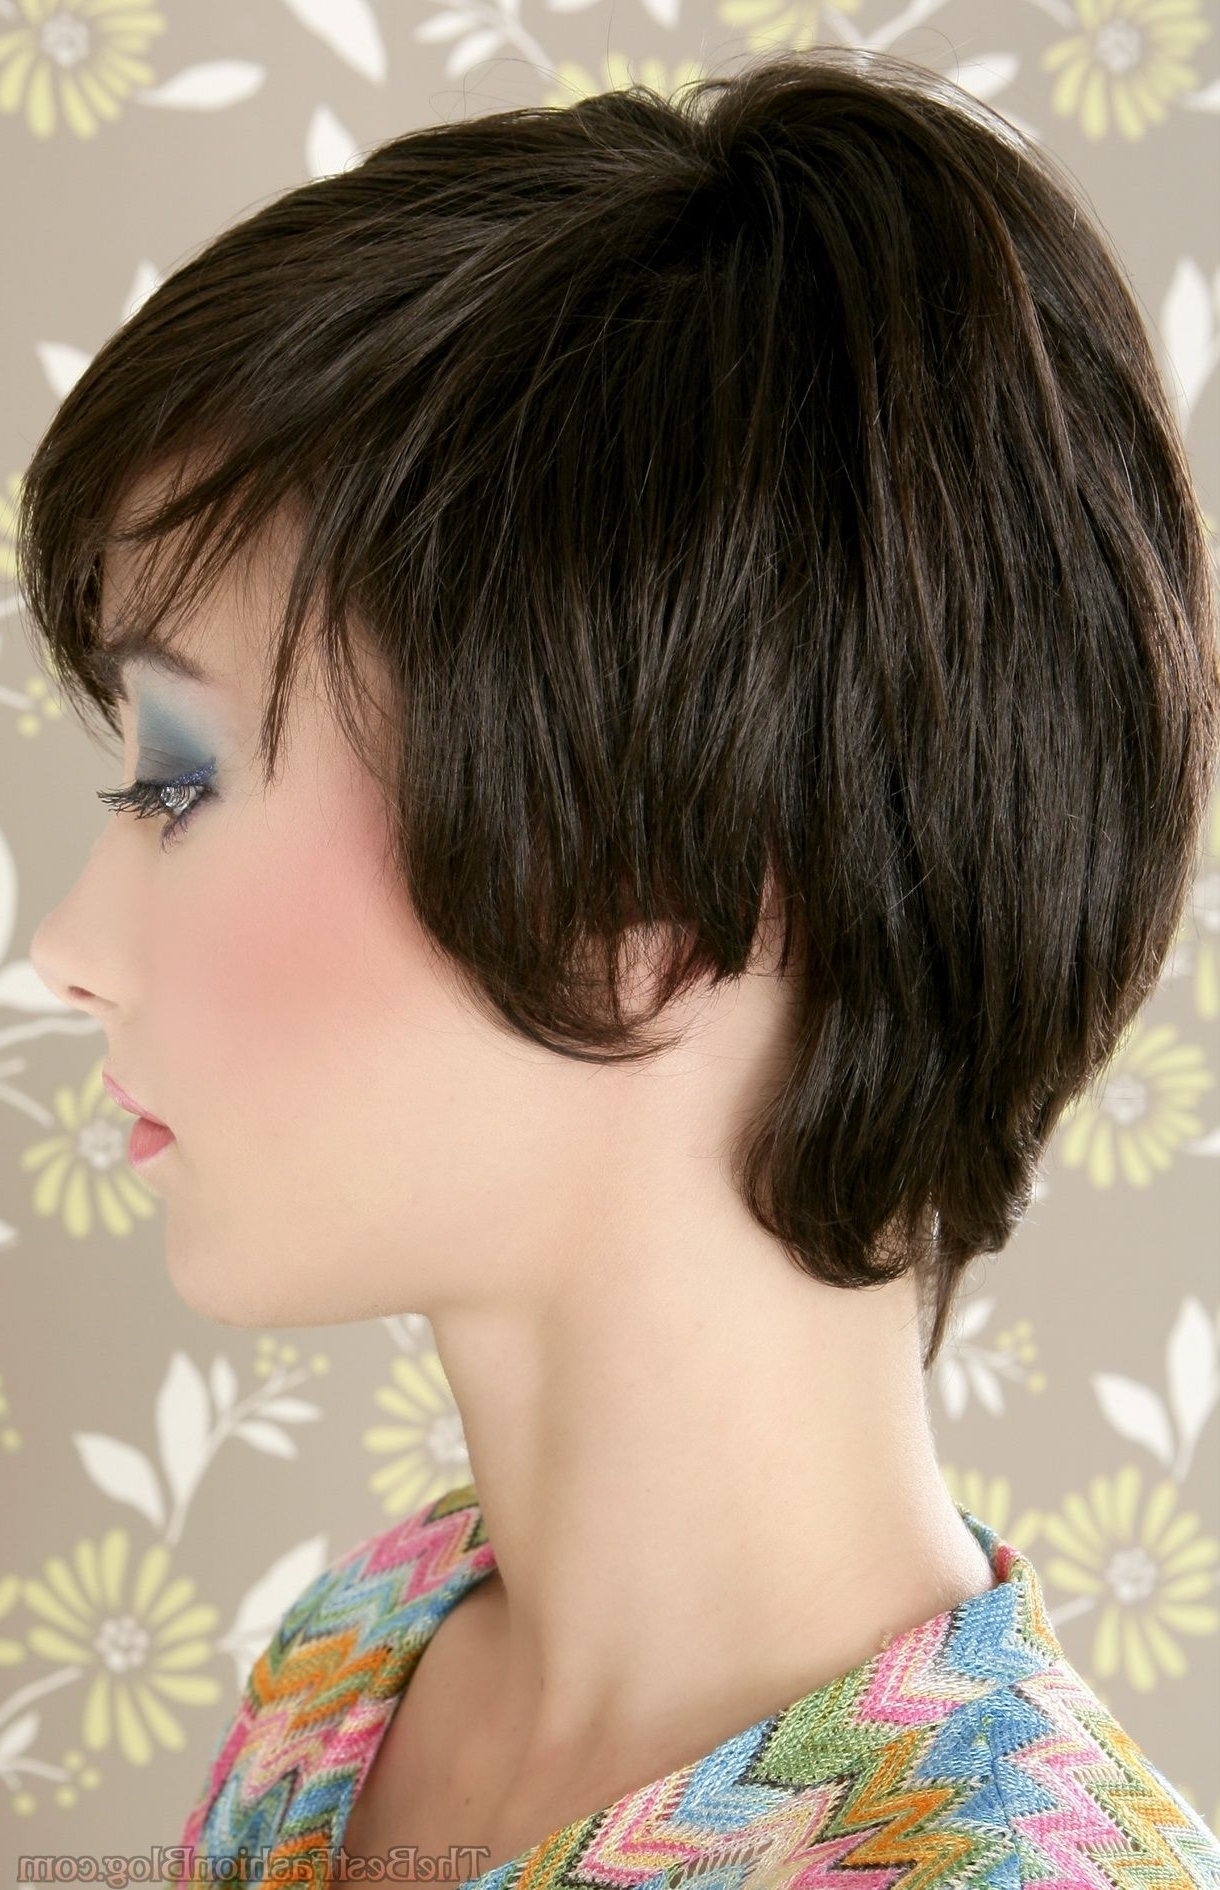 Pixie Cut Hairstyles 2018 With Latest Pixie Hairstyles With Long Layers (View 14 of 15)